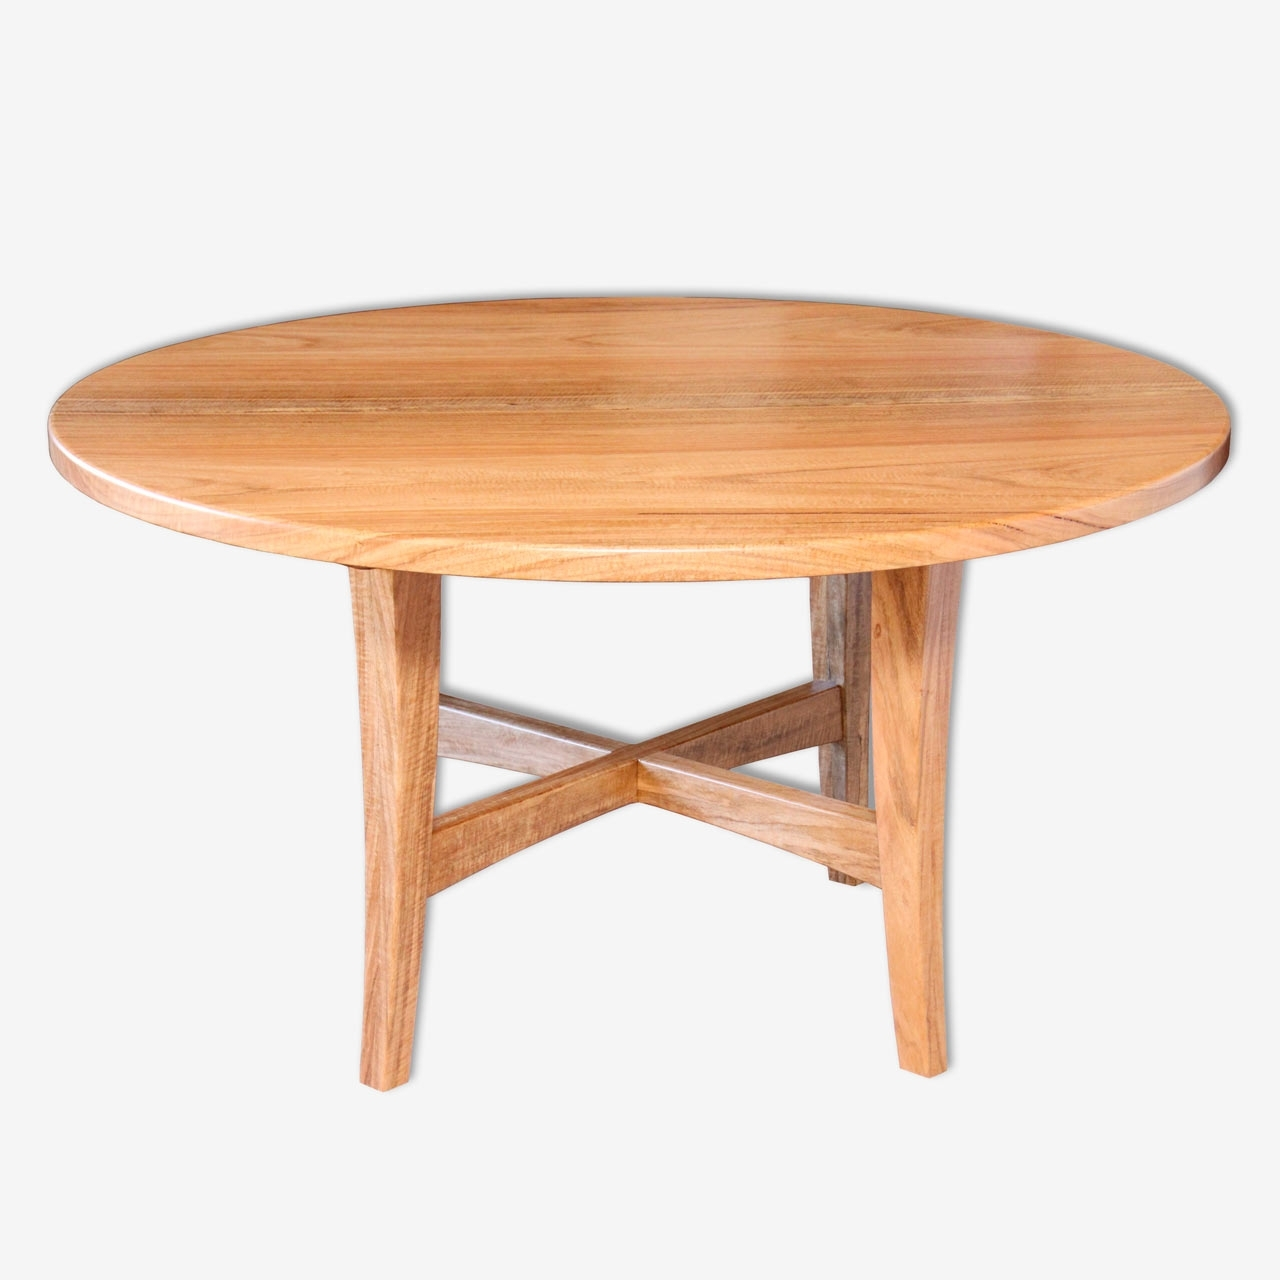 Treeton Fine For Perth Dining Tables (View 20 of 25)